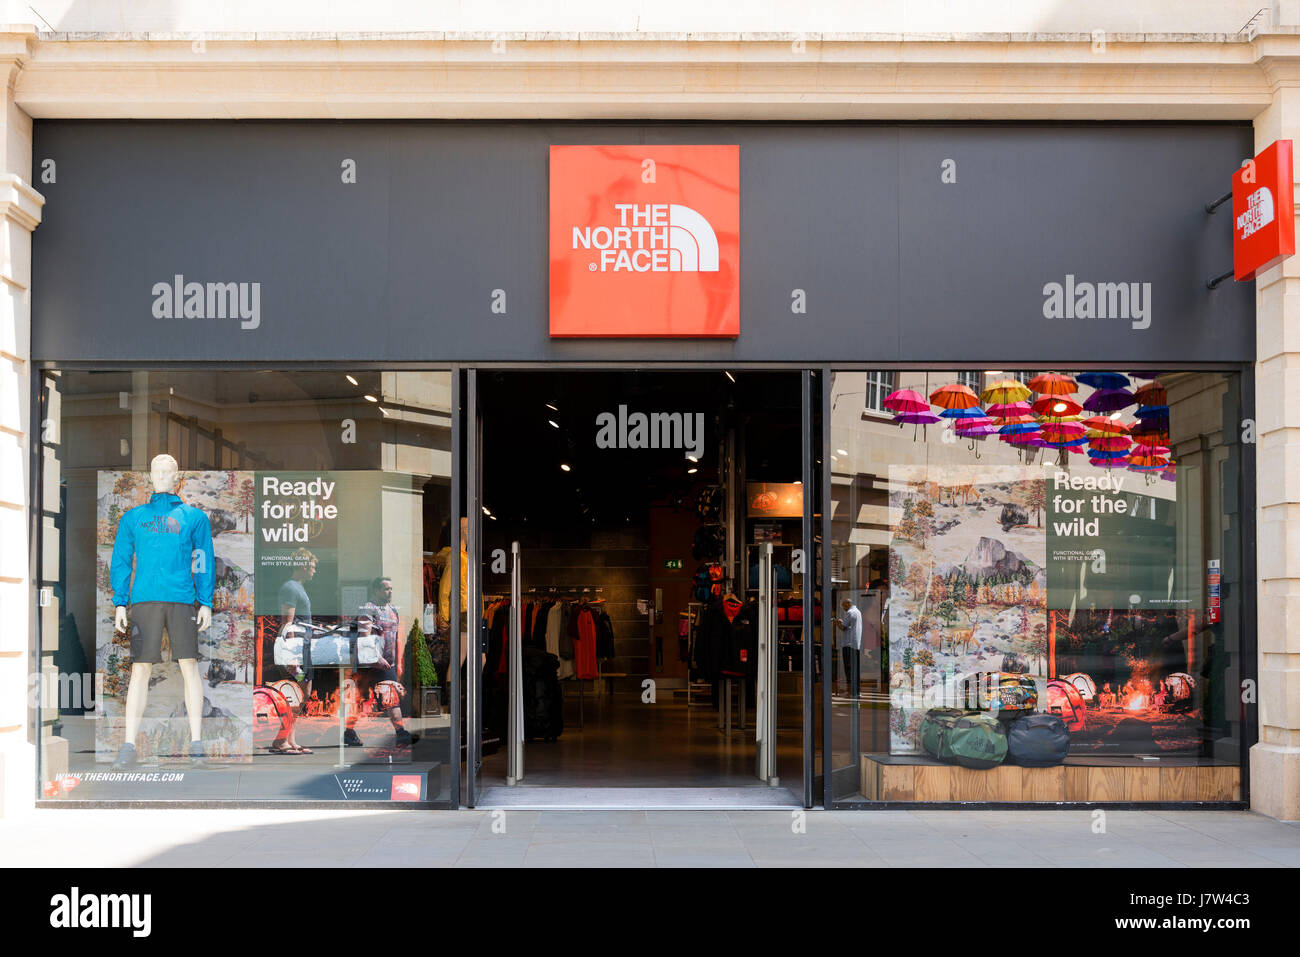 official photos 30fc5 1b266 North Face Store, UK Stock Photo: 142537811 - Alamy